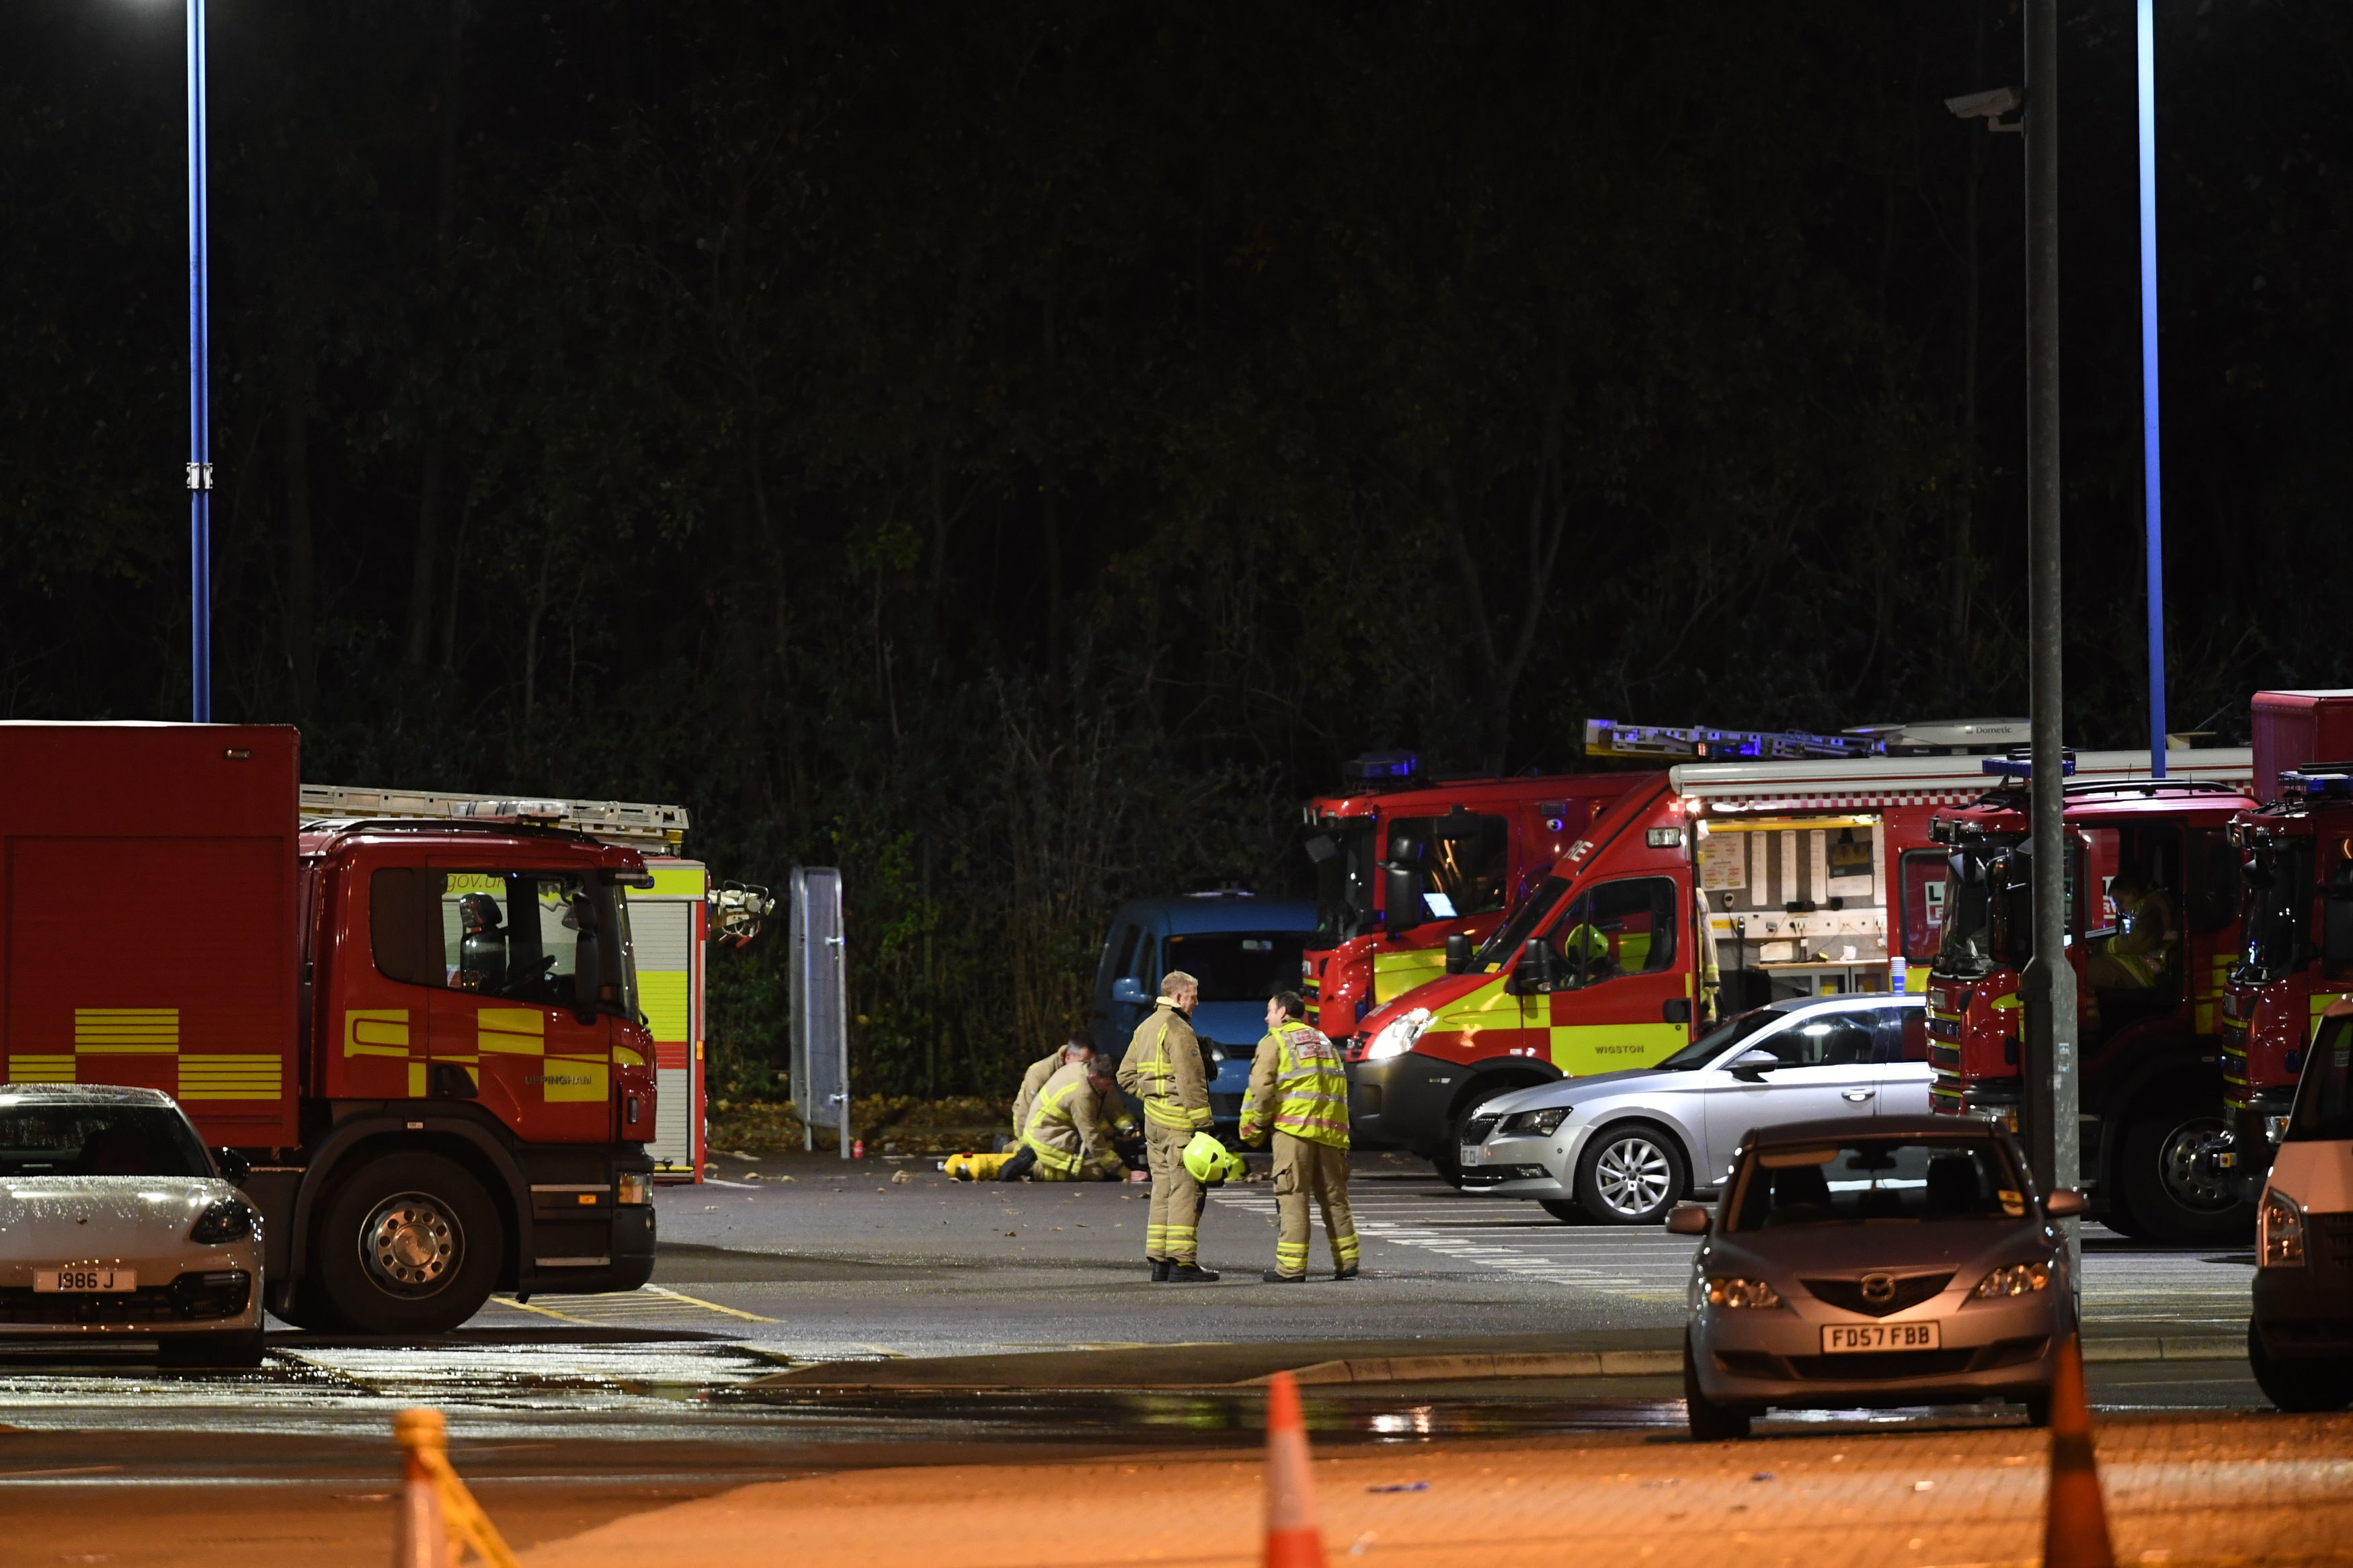 The emergency services outside the King Power Stadium in Leicester after a helicopter belonging to Leicester City Football Club owner Vichai Srivaddhnaprabha crashed in a car park (Joe Giddens/PA)